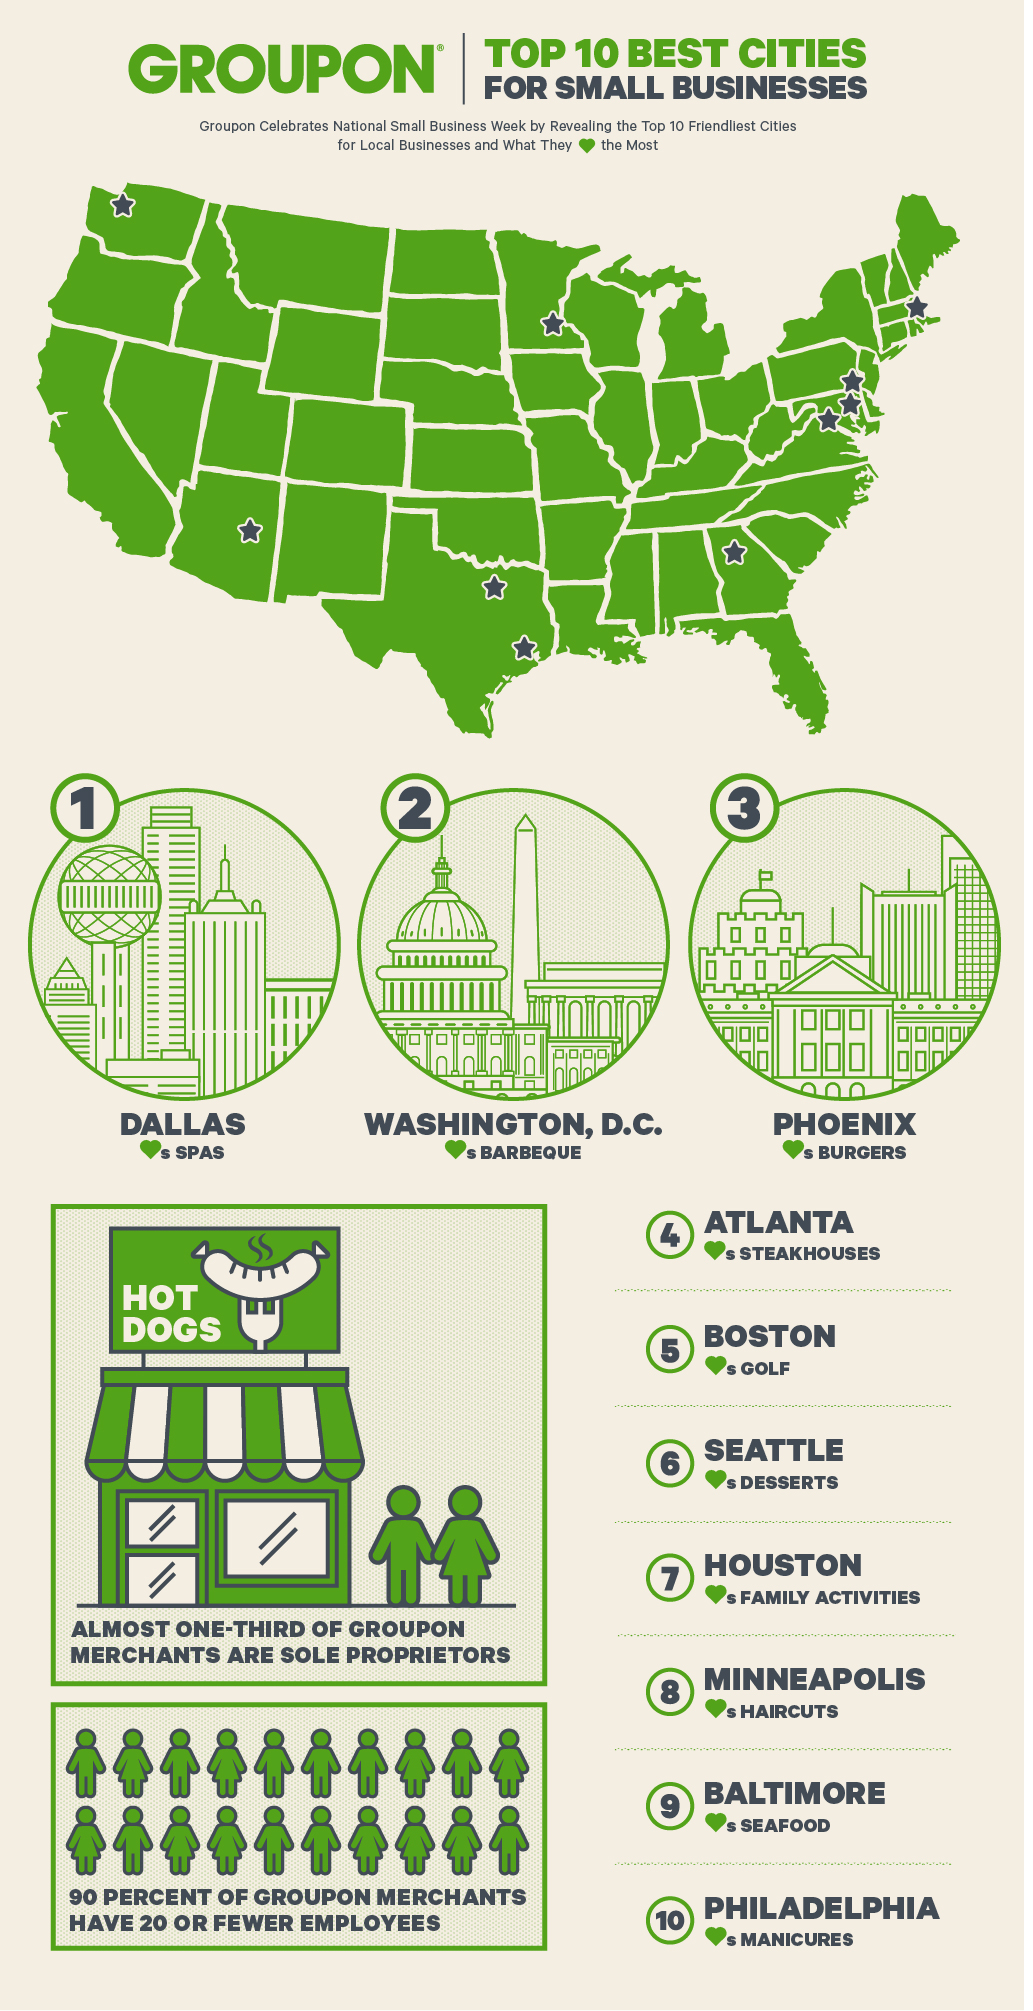 Groupon Celebrates National Small Business Week by Revealing the Top 10 Friendliest Cities for Local Businesses